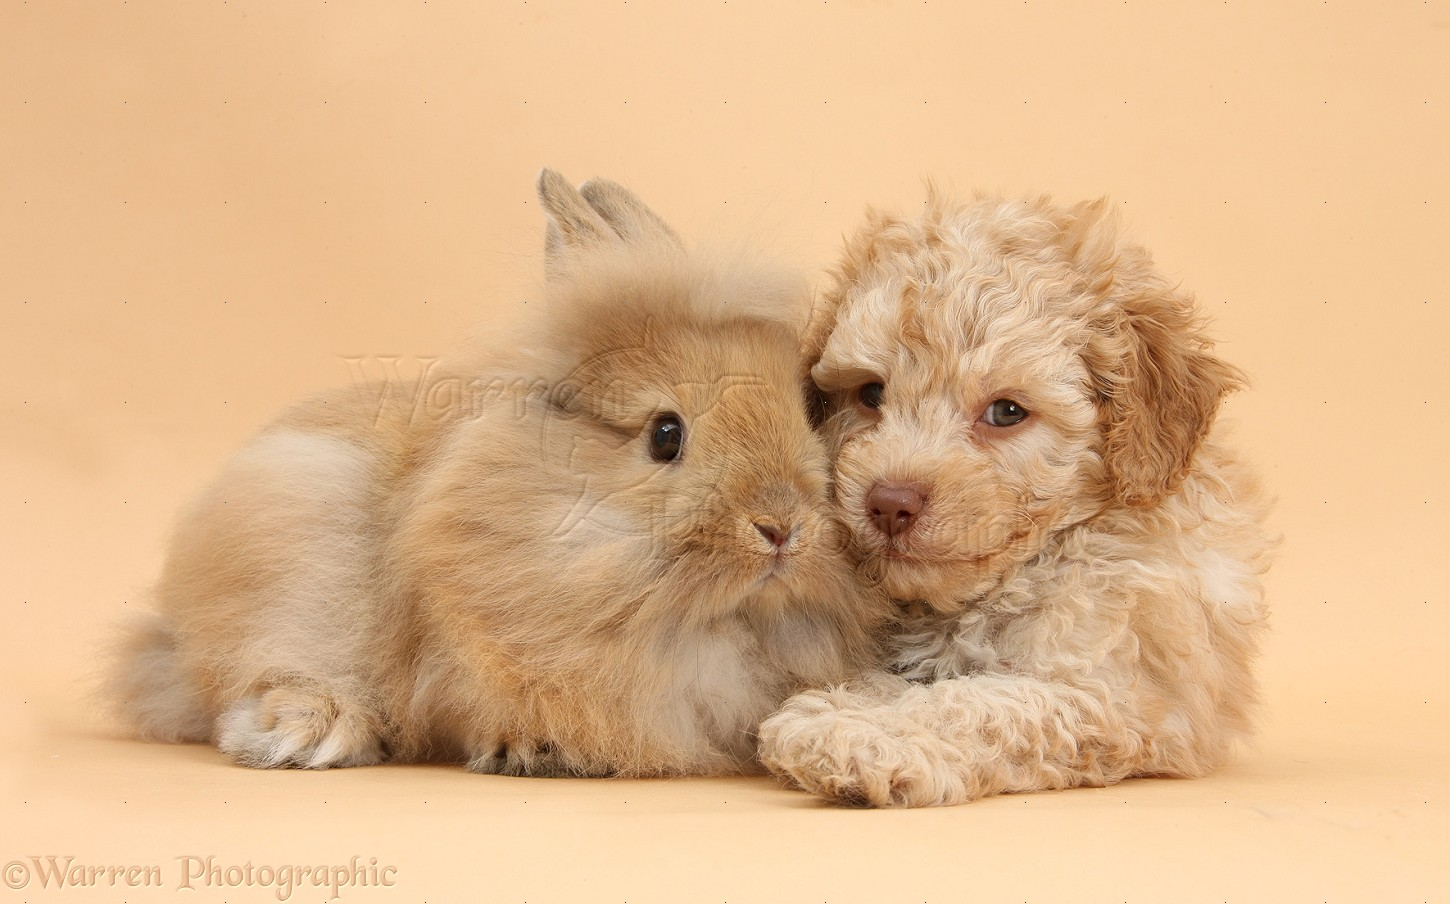 Pets Toy Labradoodle Puppy And Fluffy Bunny Photo Wp37339